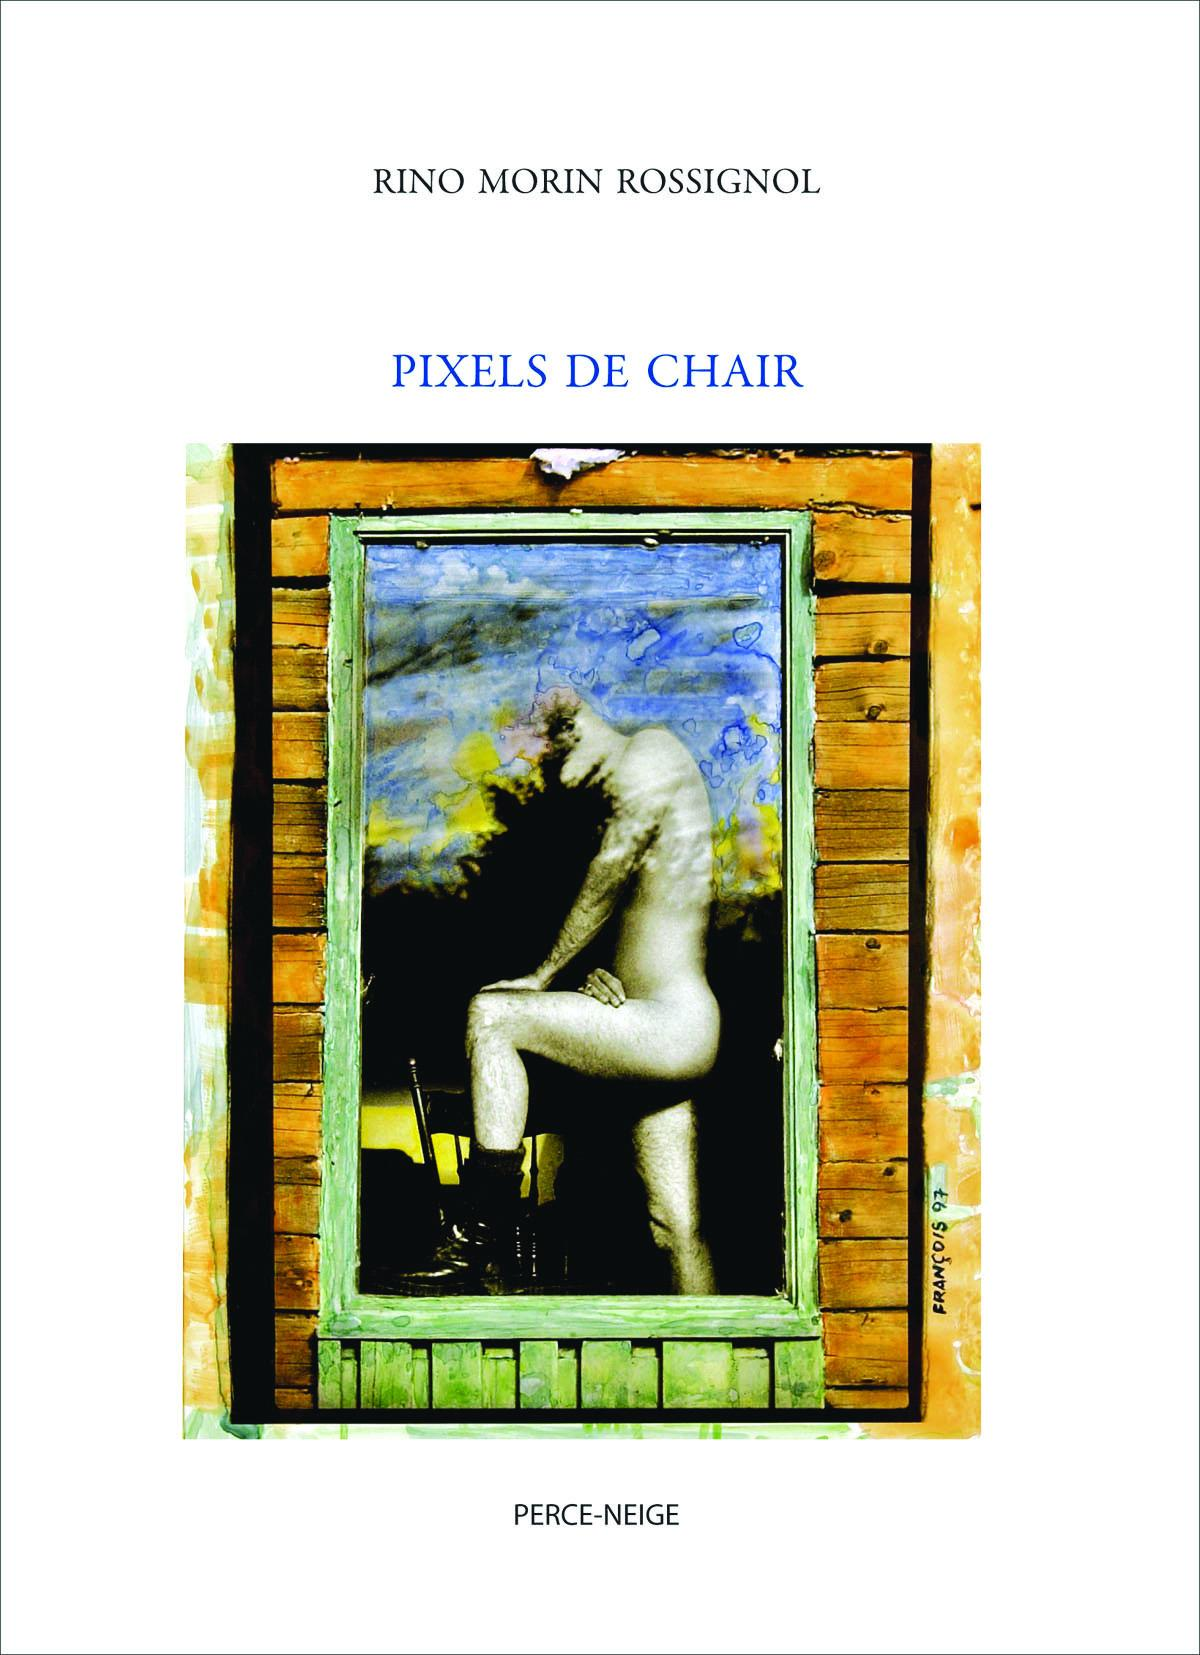 Pixels de chair Image 1